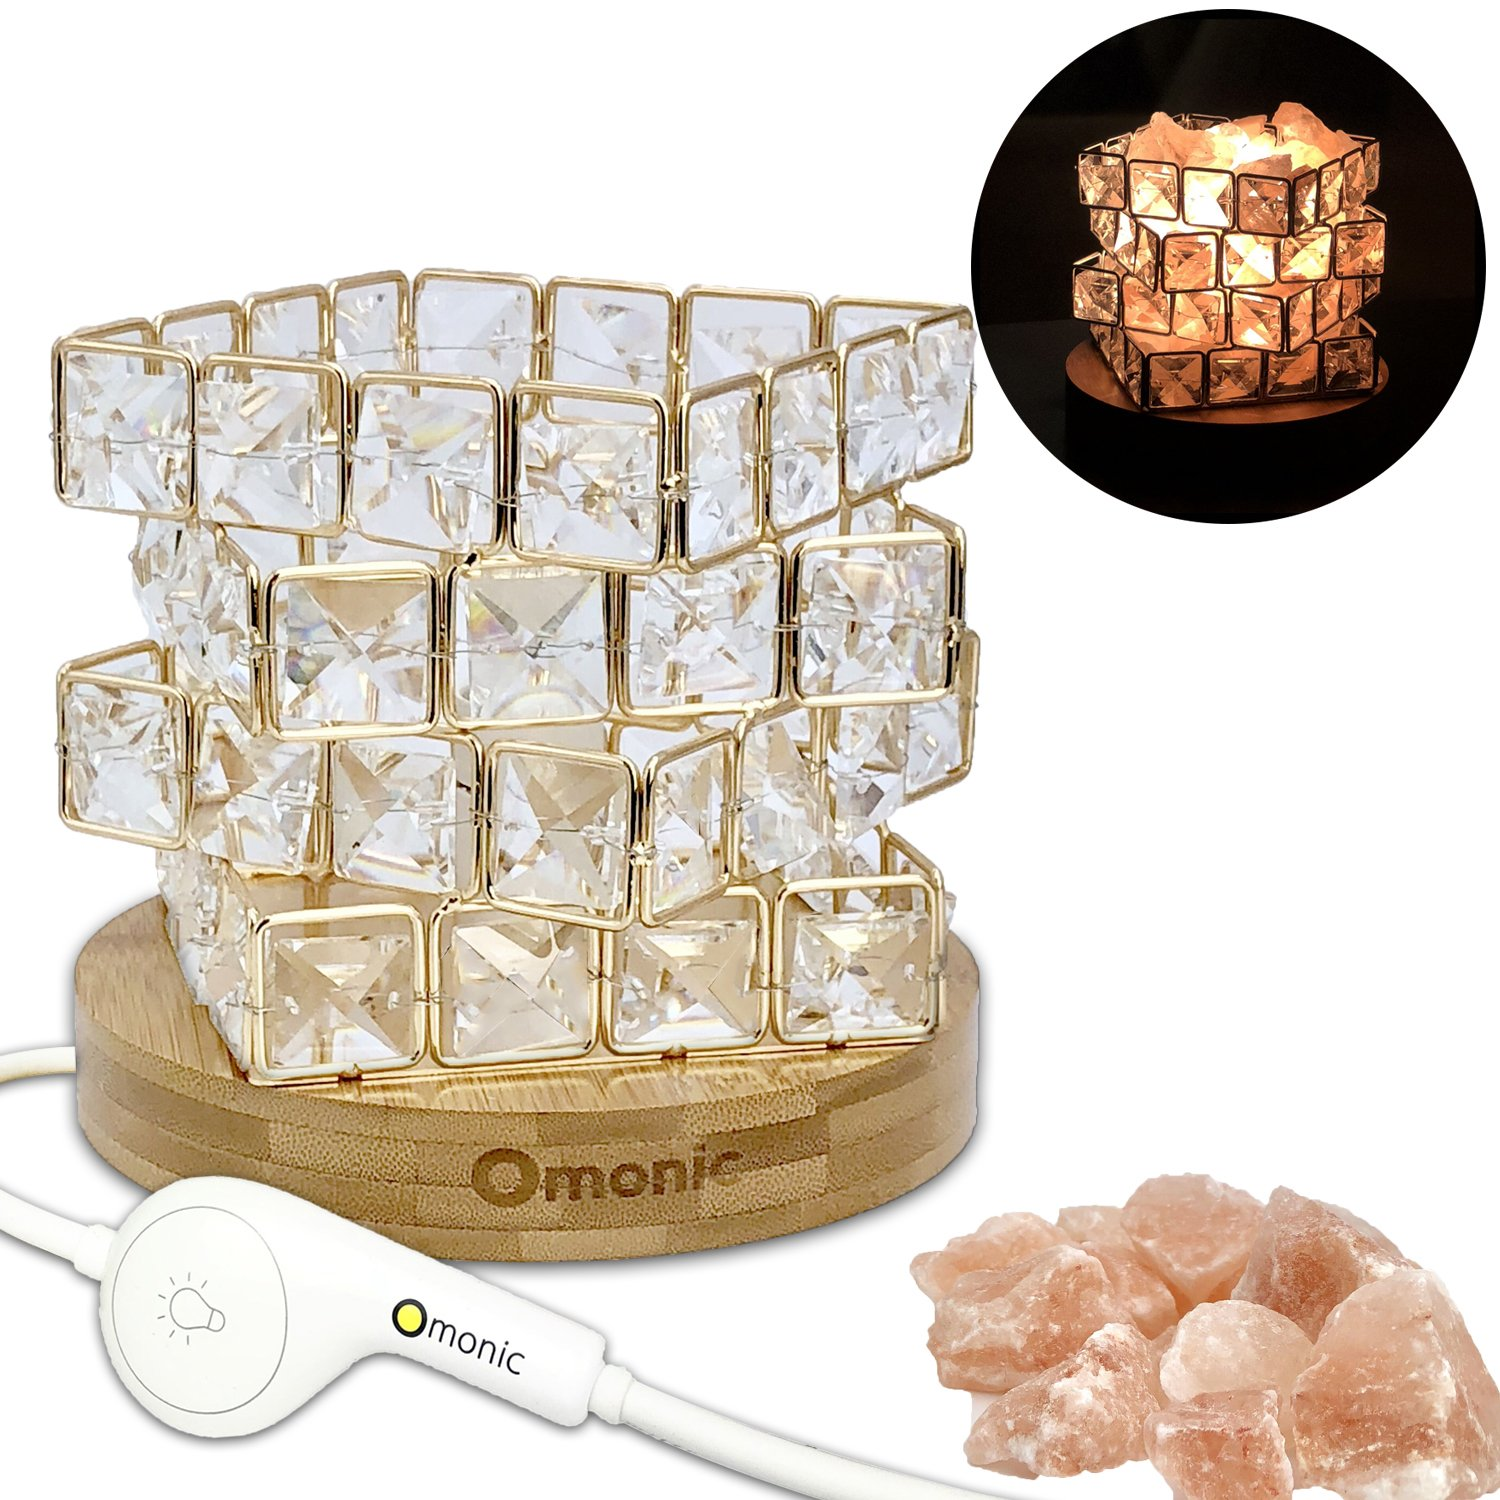 Best Gift, Luxury Mosic Glass Crystal Basket Cube Fire Bowl Pink Himalayan Salt Lamp Crystal Chunks Table Desk Lamp Light Night Light Lights Touch Dimmer Switch Control with Bamboo Base